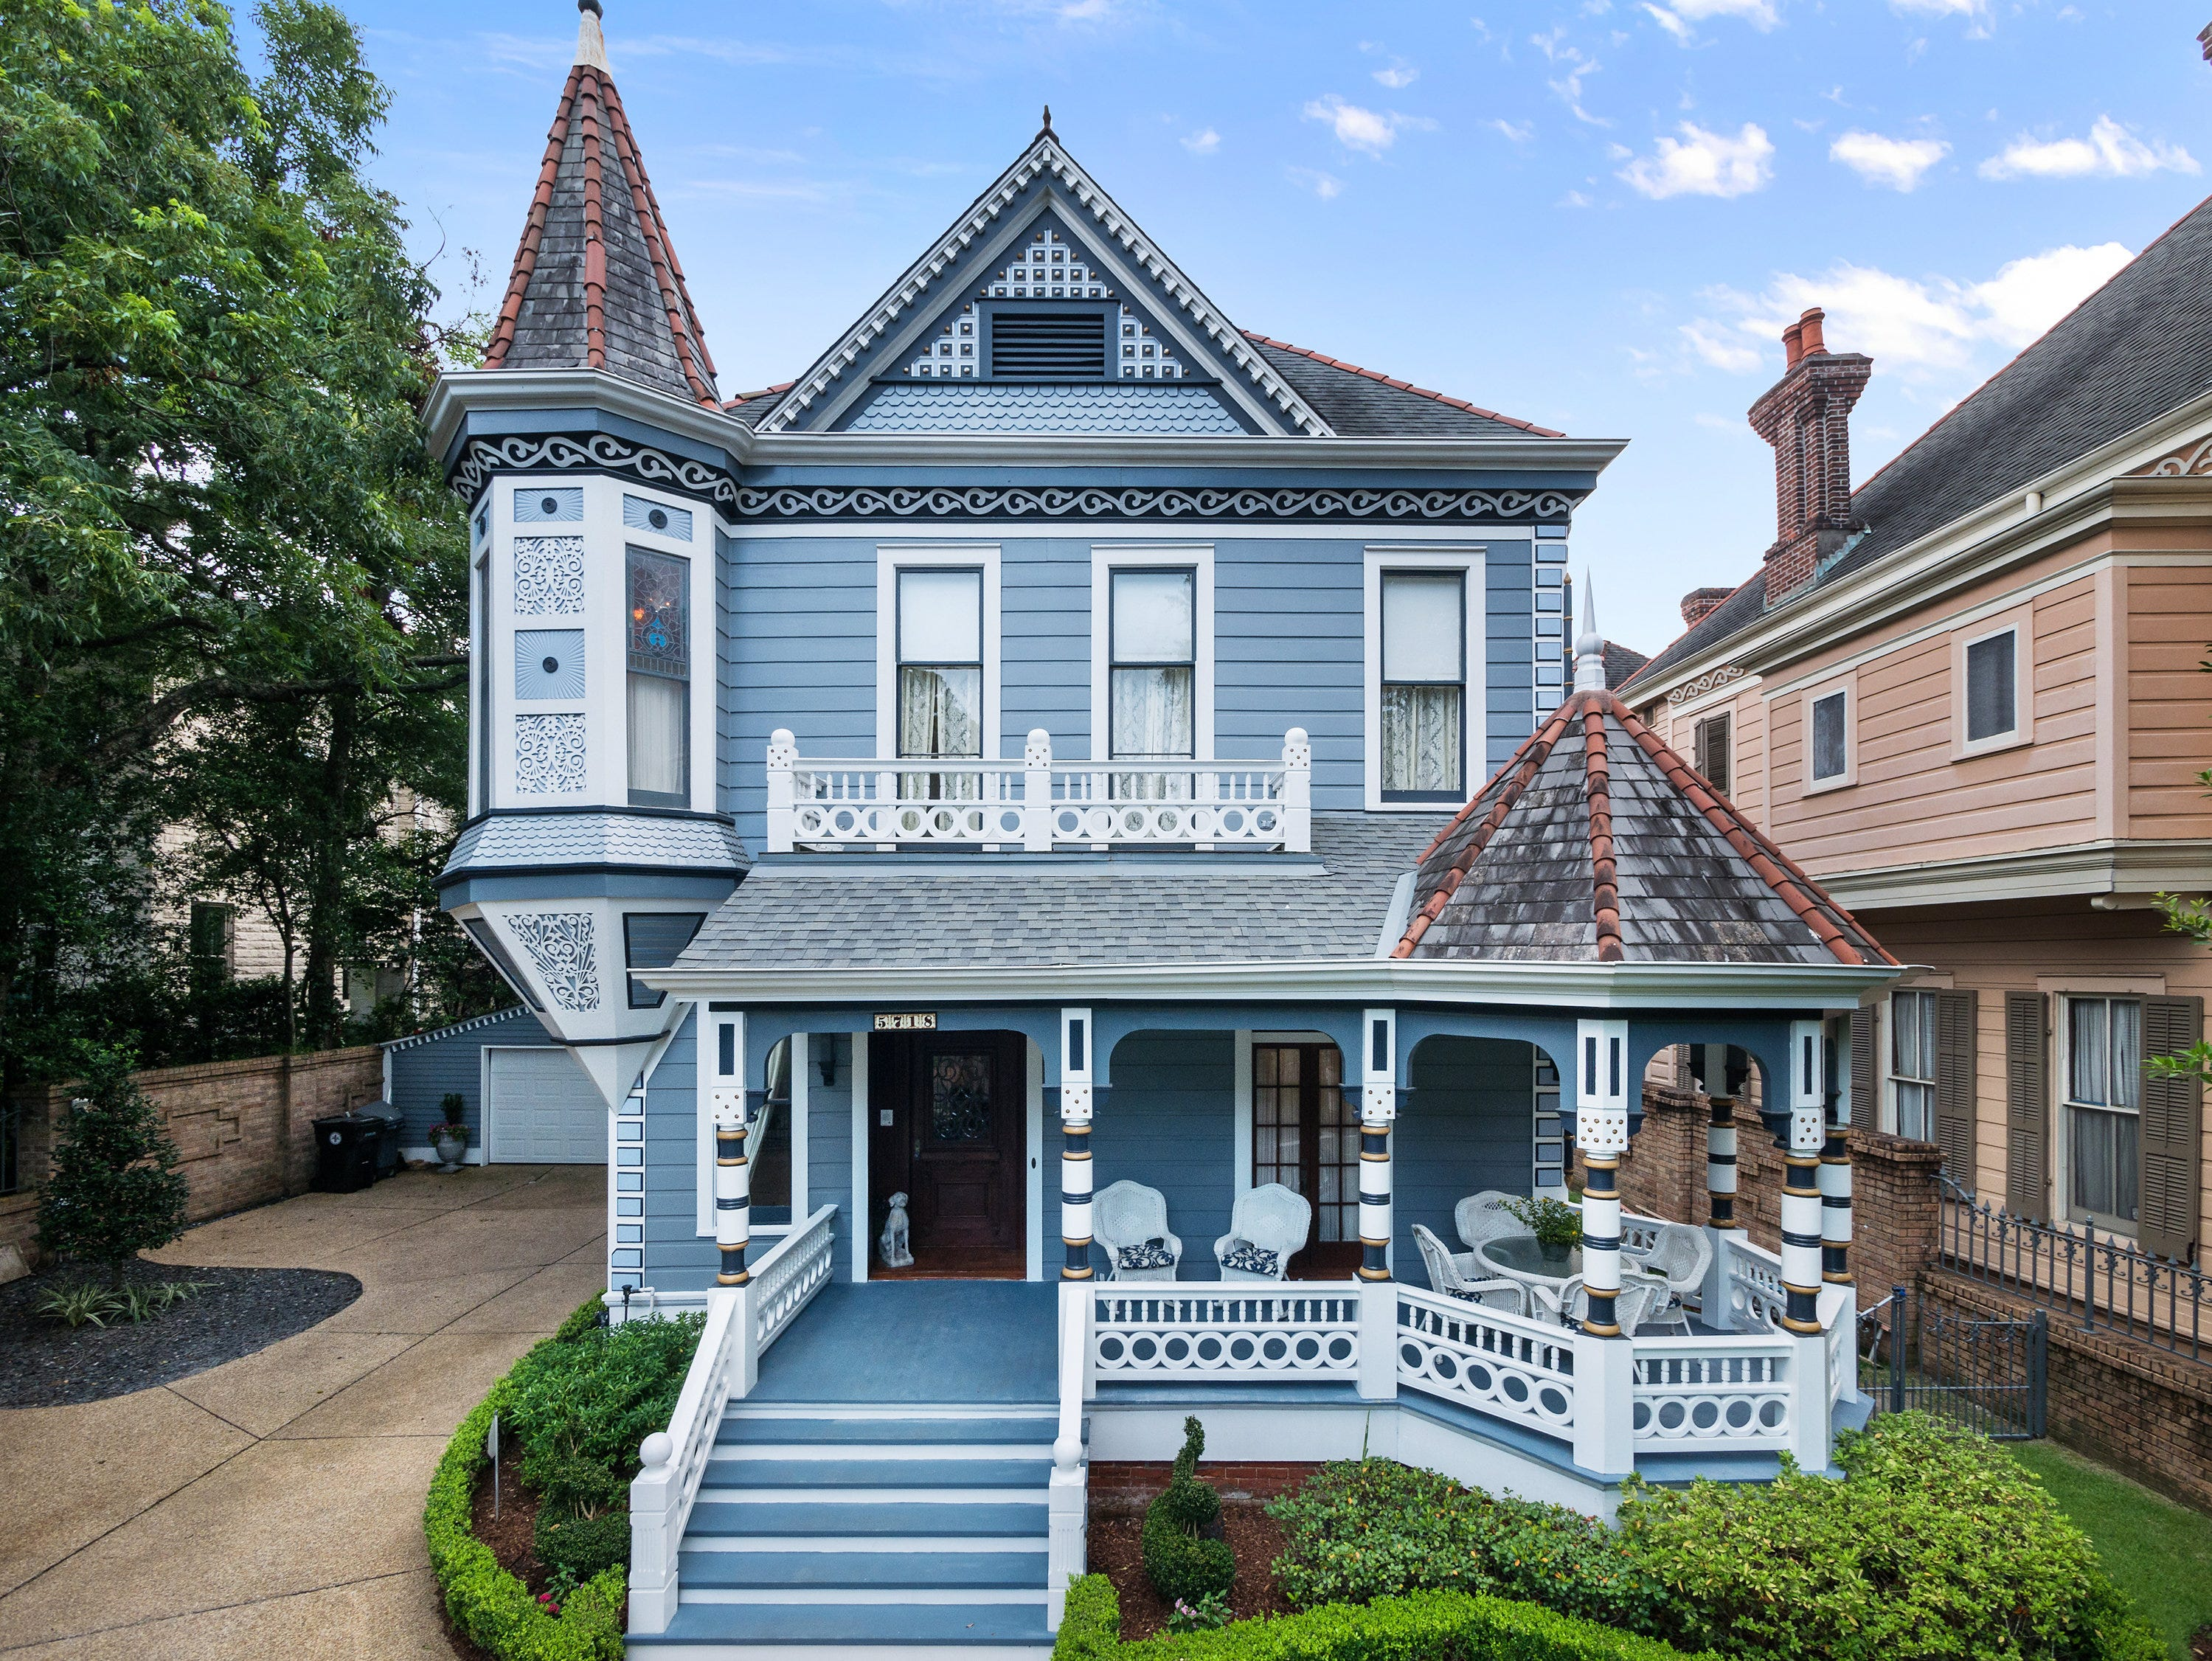 Curious about those New Orleans mansions? See this one at $3.5M